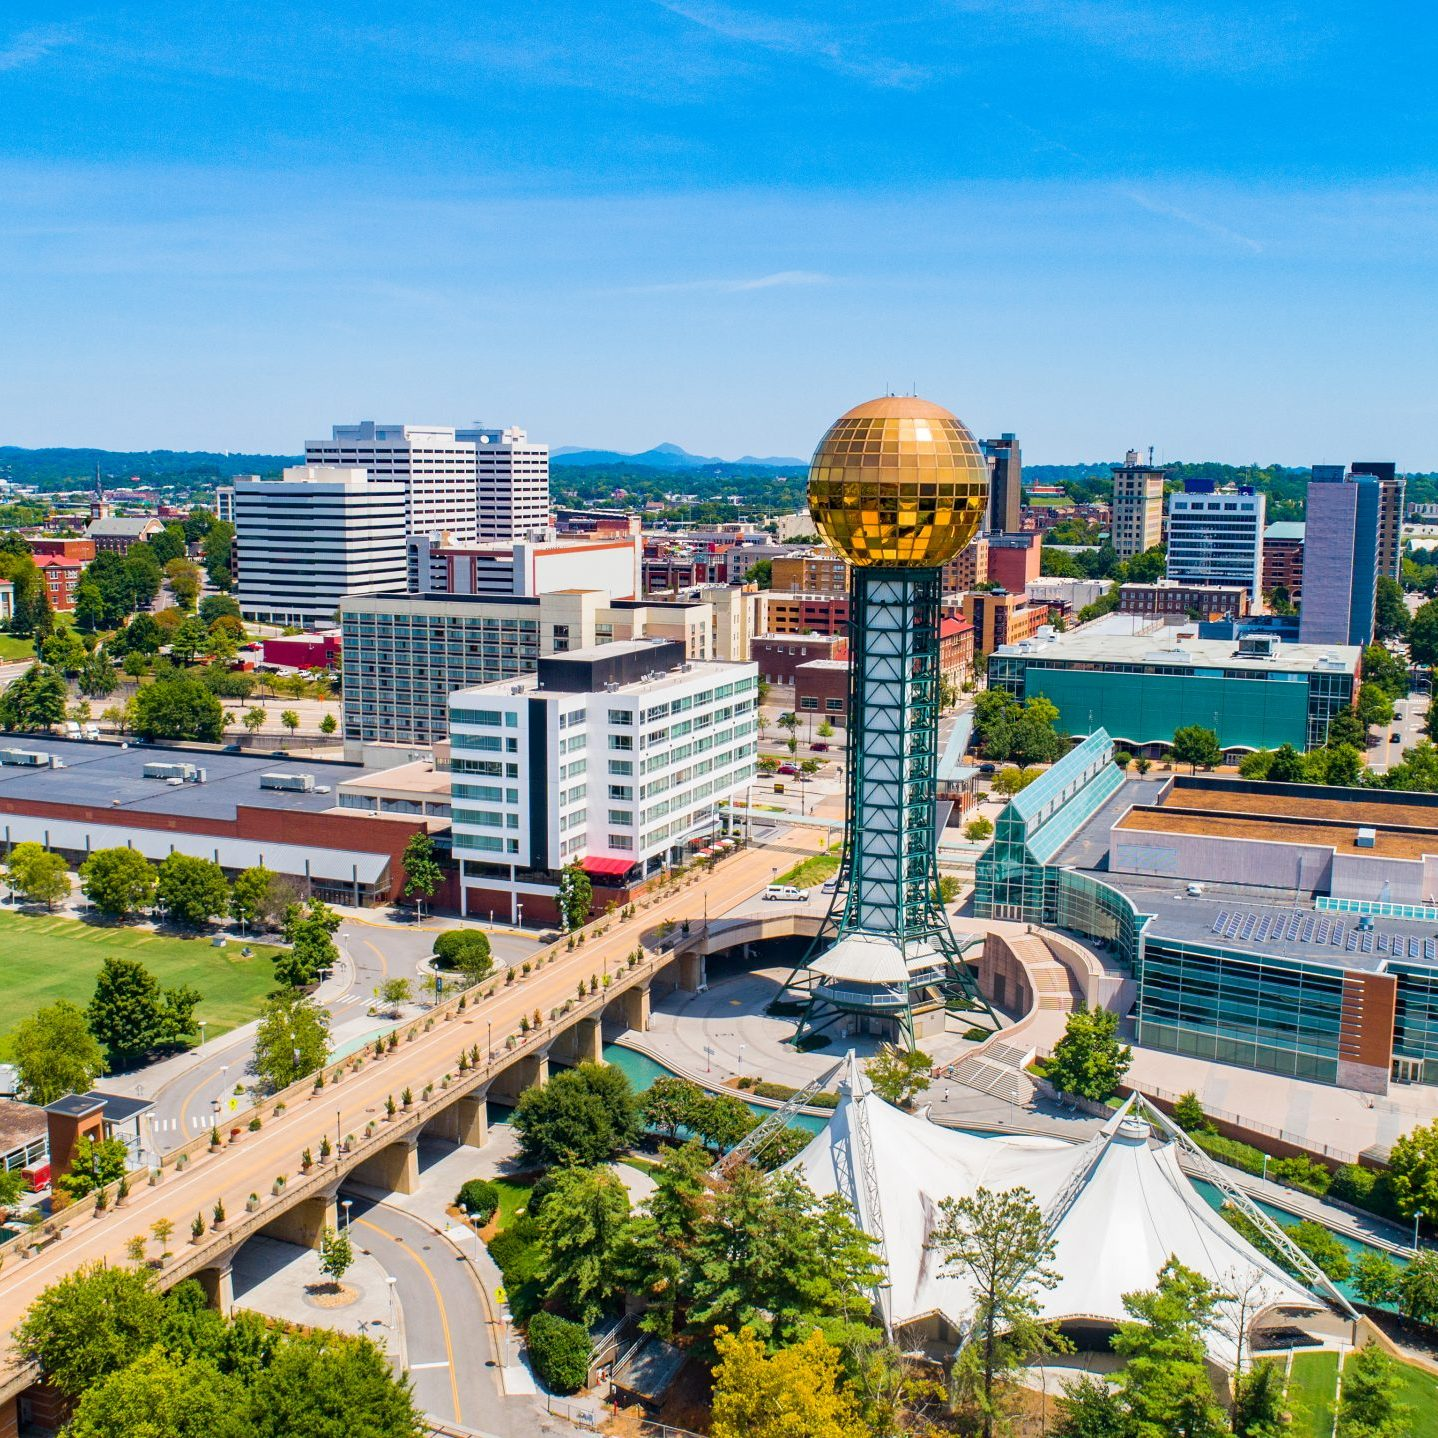 Commercial Real Estate and Investments in Knoxville, TN